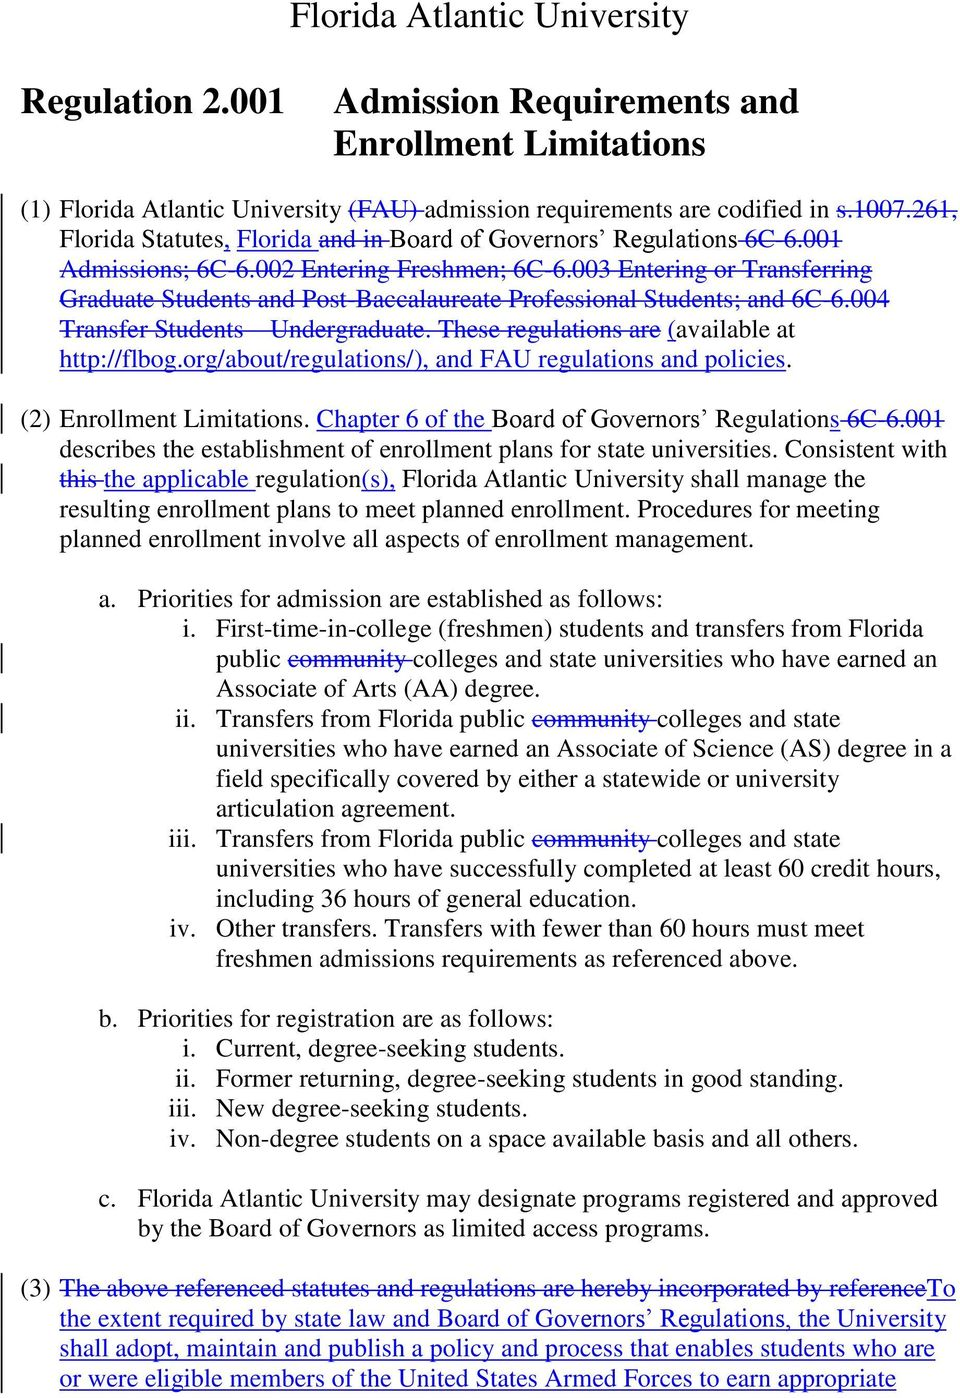 003 Entering or Transferring Graduate Students and Post-Baccalaureate Professional Students; and 6C-6.004 Transfer Students Undergraduate. These regulations are (available at http://flbog.